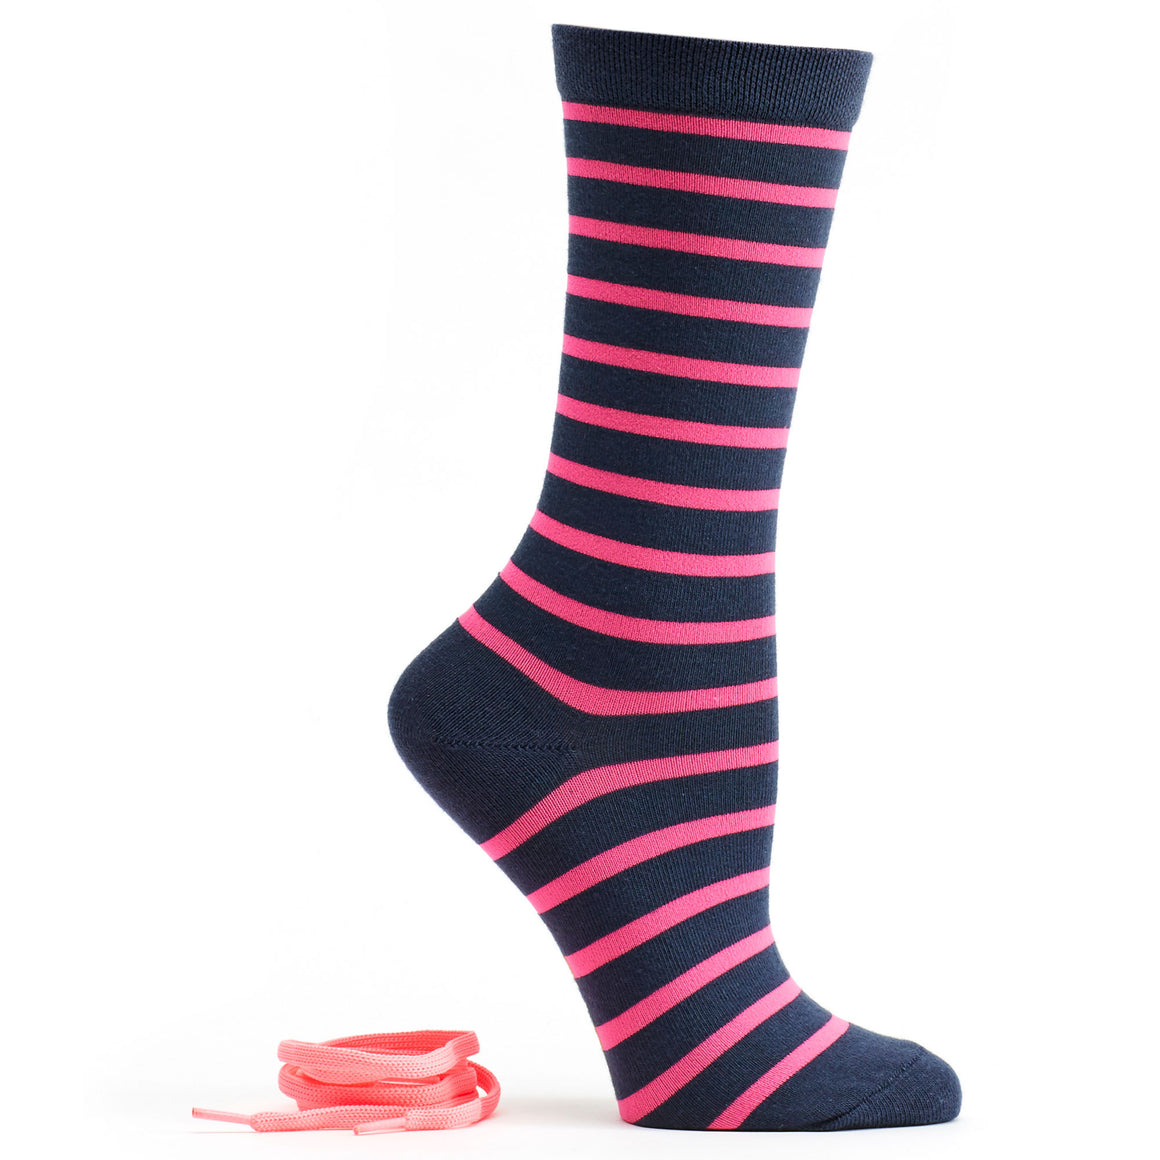 Stripes and Neon Socks and Shoelaces in Navy size 9-11 womens crew from ozone socks